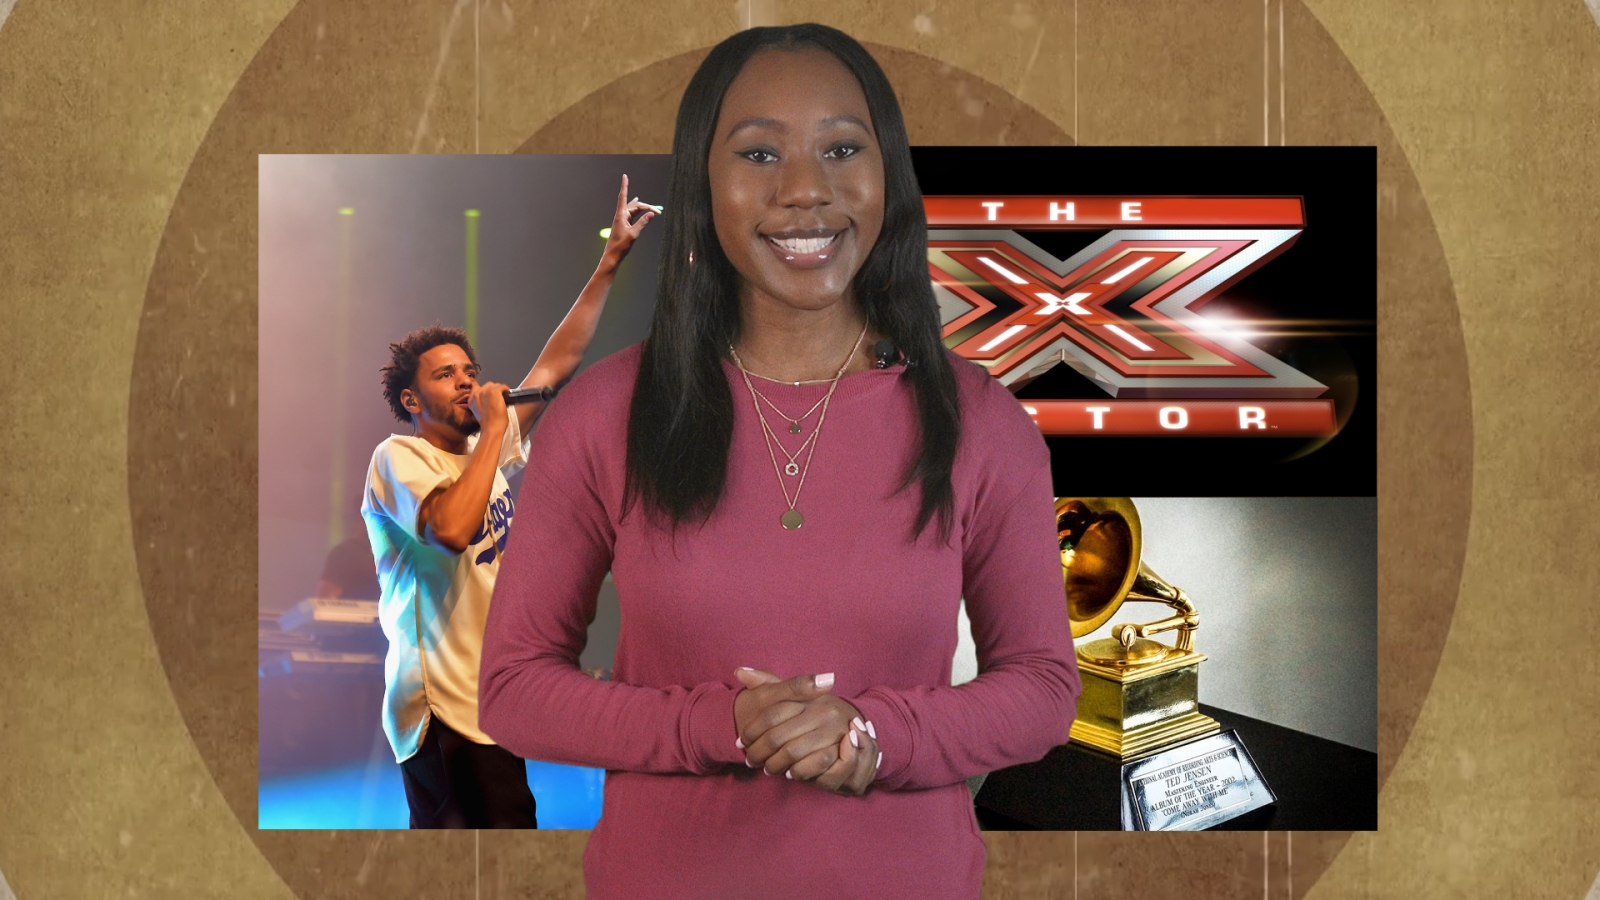 Music Minute: Sam Smith X Factor snub, Grammy nominations revealed and J Cole releases new album